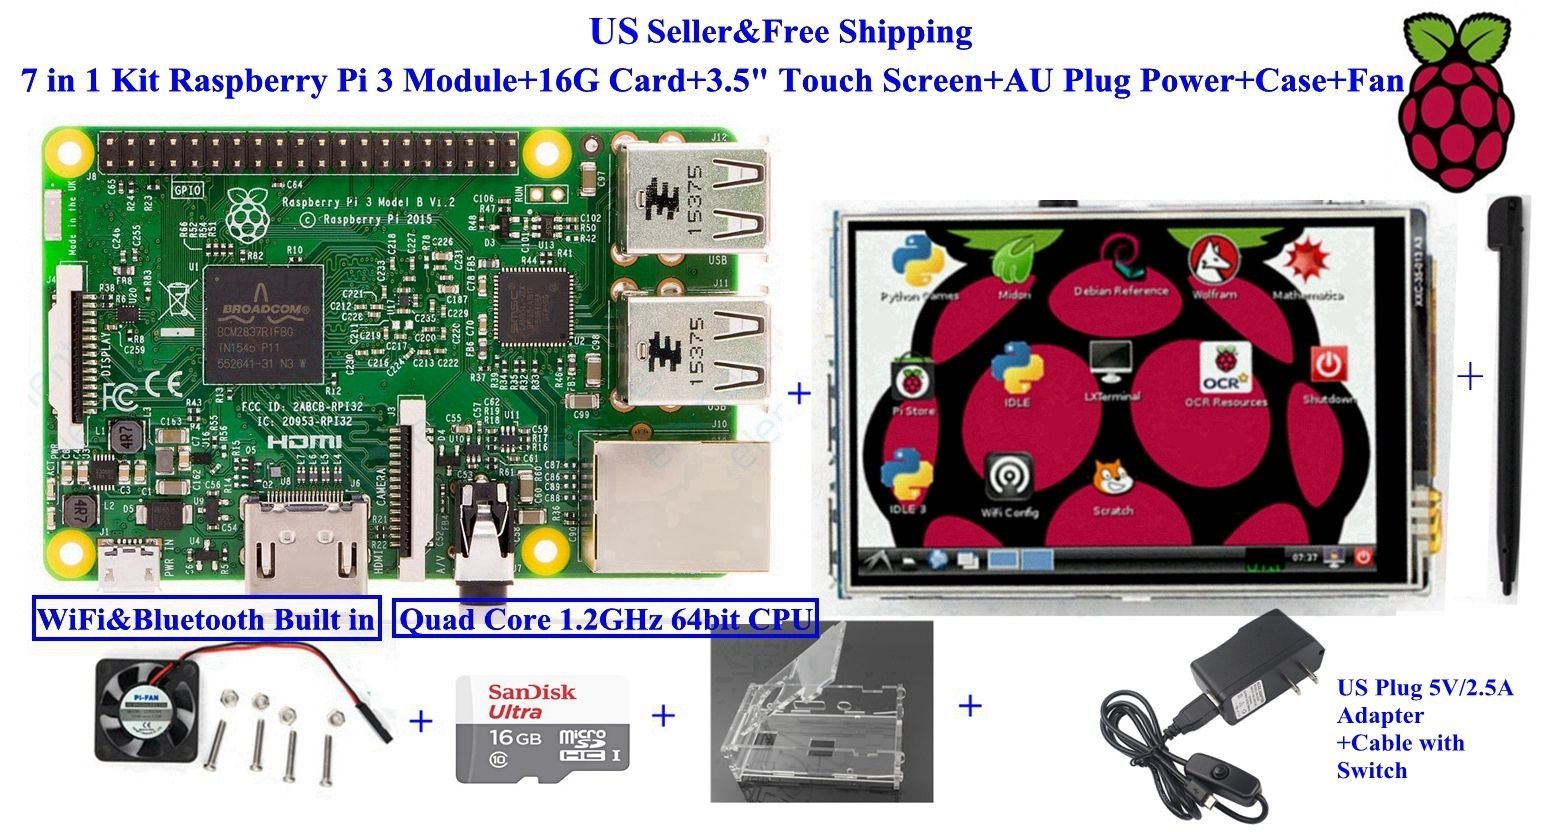 7 in 1 Kit Raspberry Pi 3 Module+16G Card+3.5'' Touch Screen+US Plug Power+Case